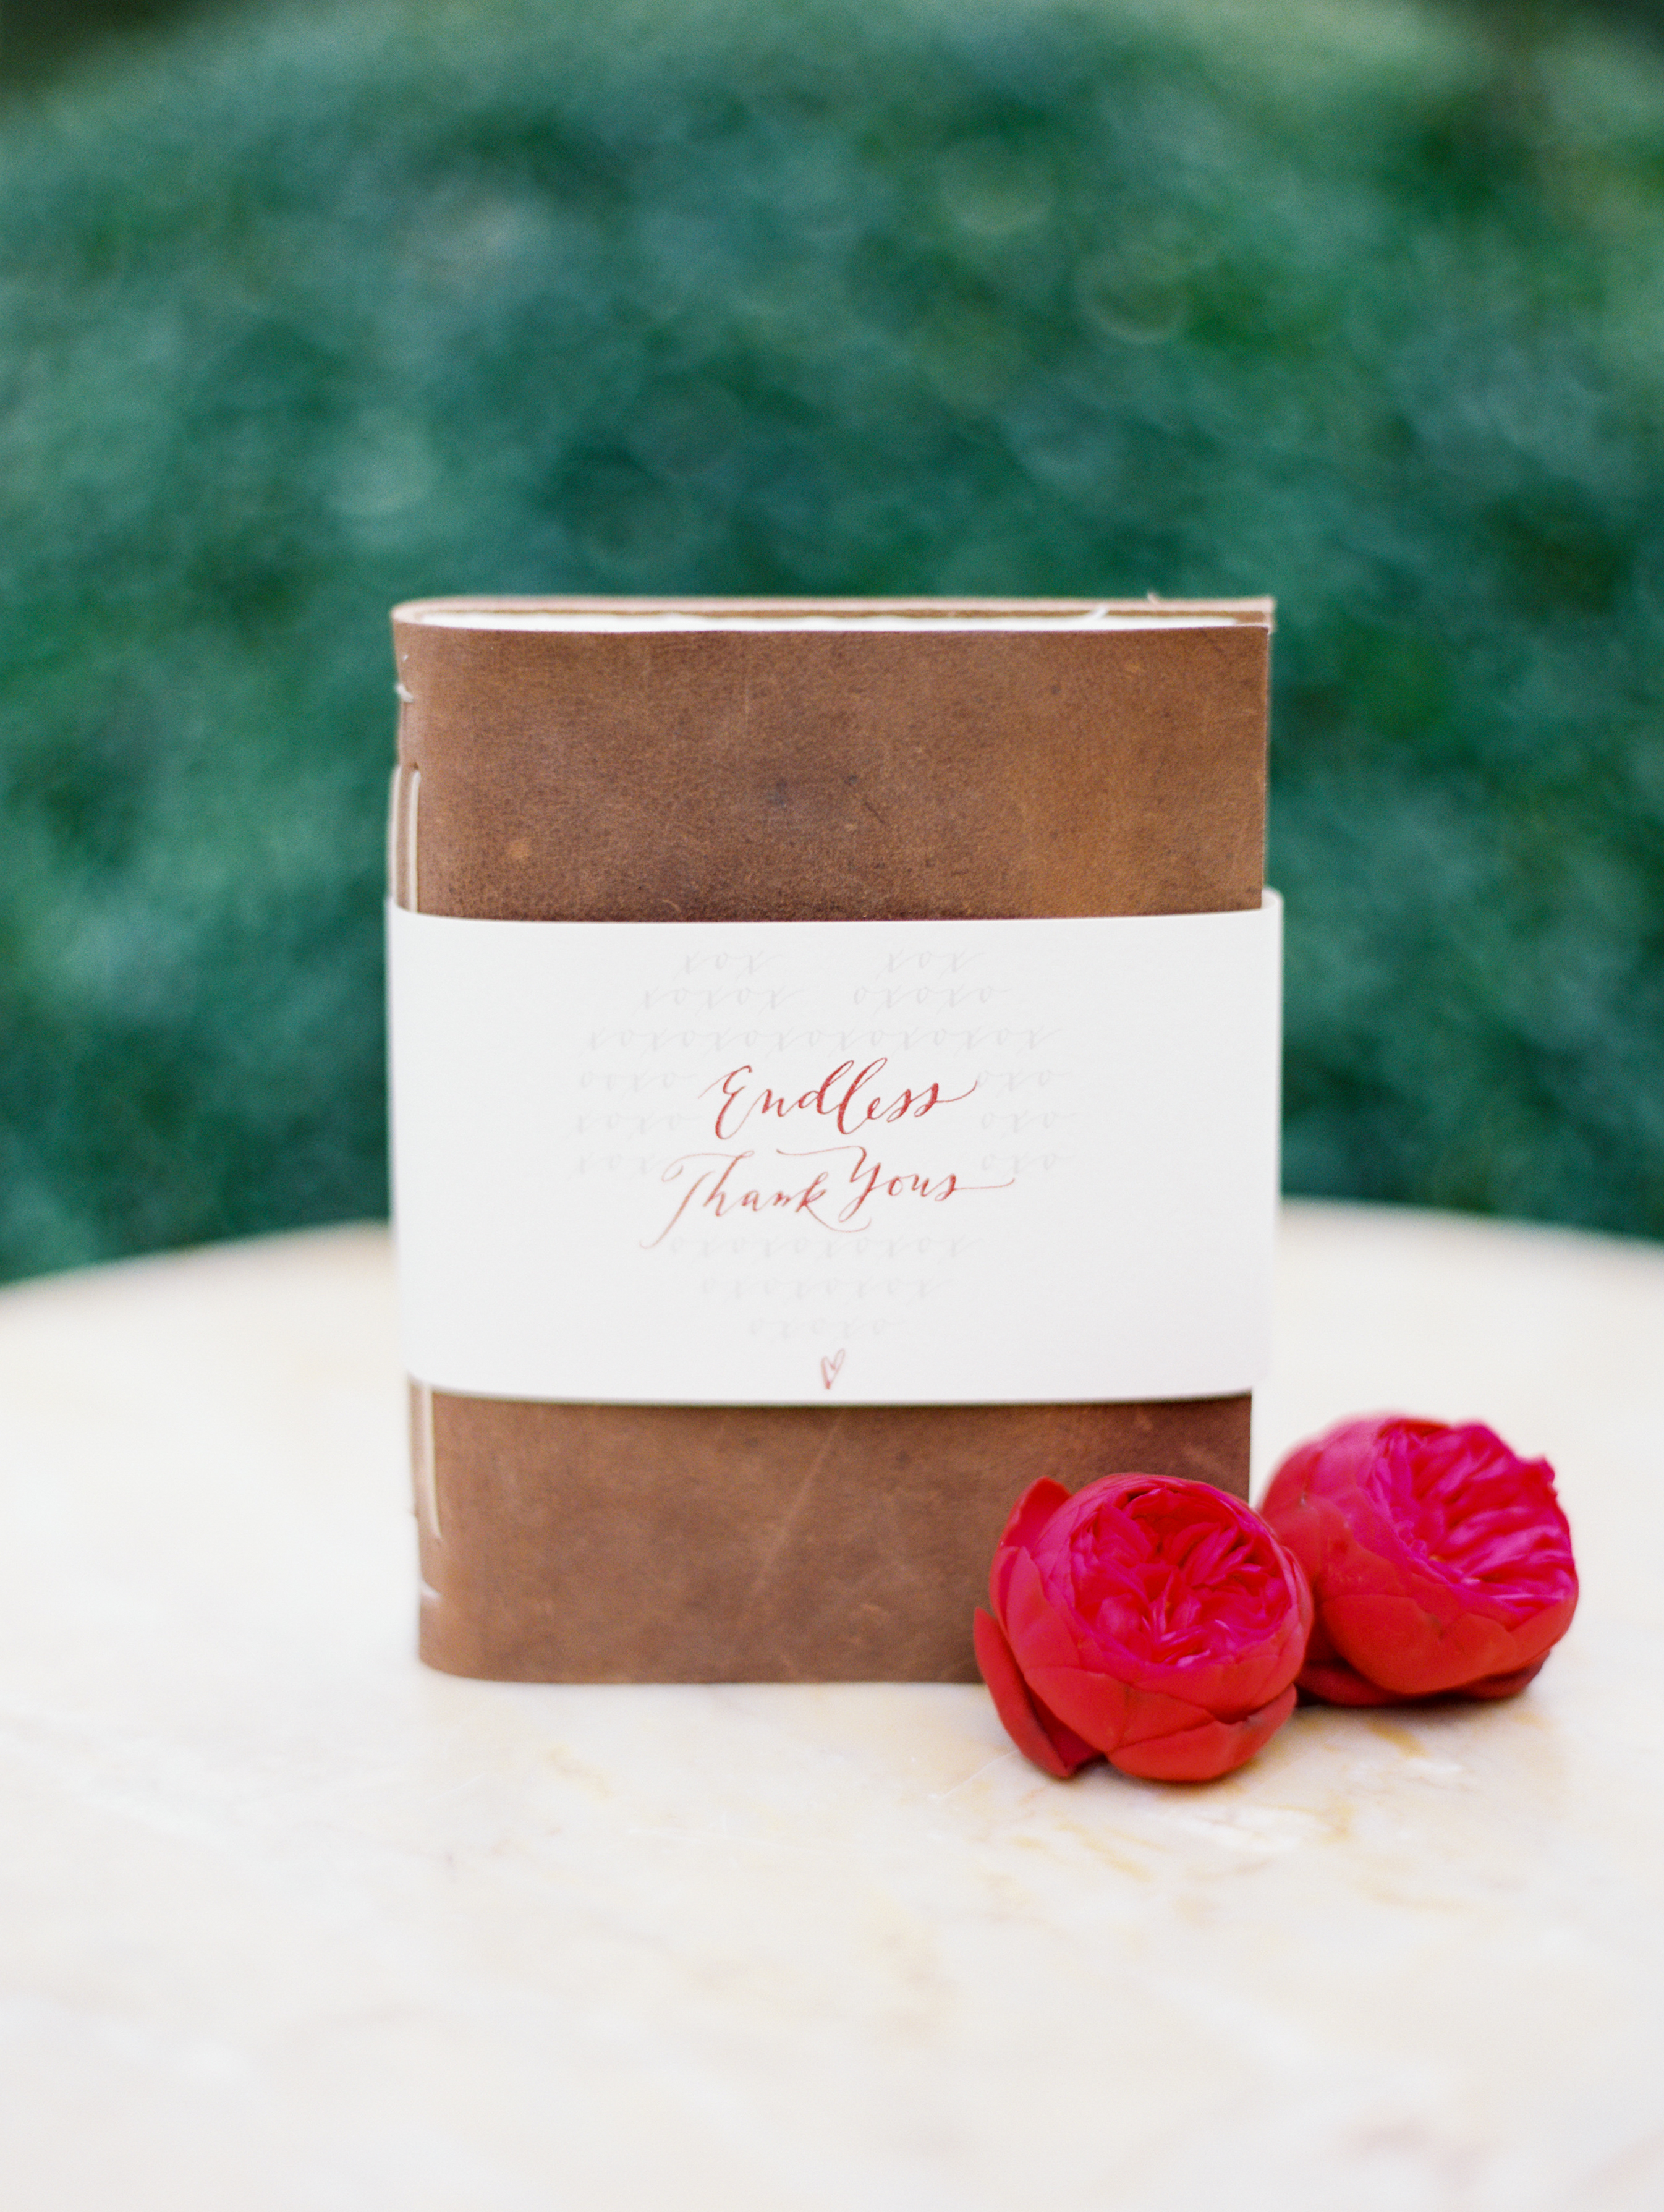 Favors & Gifts, Real Weddings, Wedding Style, Garden Wedding Favors & Gifts, West Coast Real Weddings, Garden Real Weddings, Garden Weddings, Guest gifts, Romantic Real Weddings, Romantic Weddings, journals